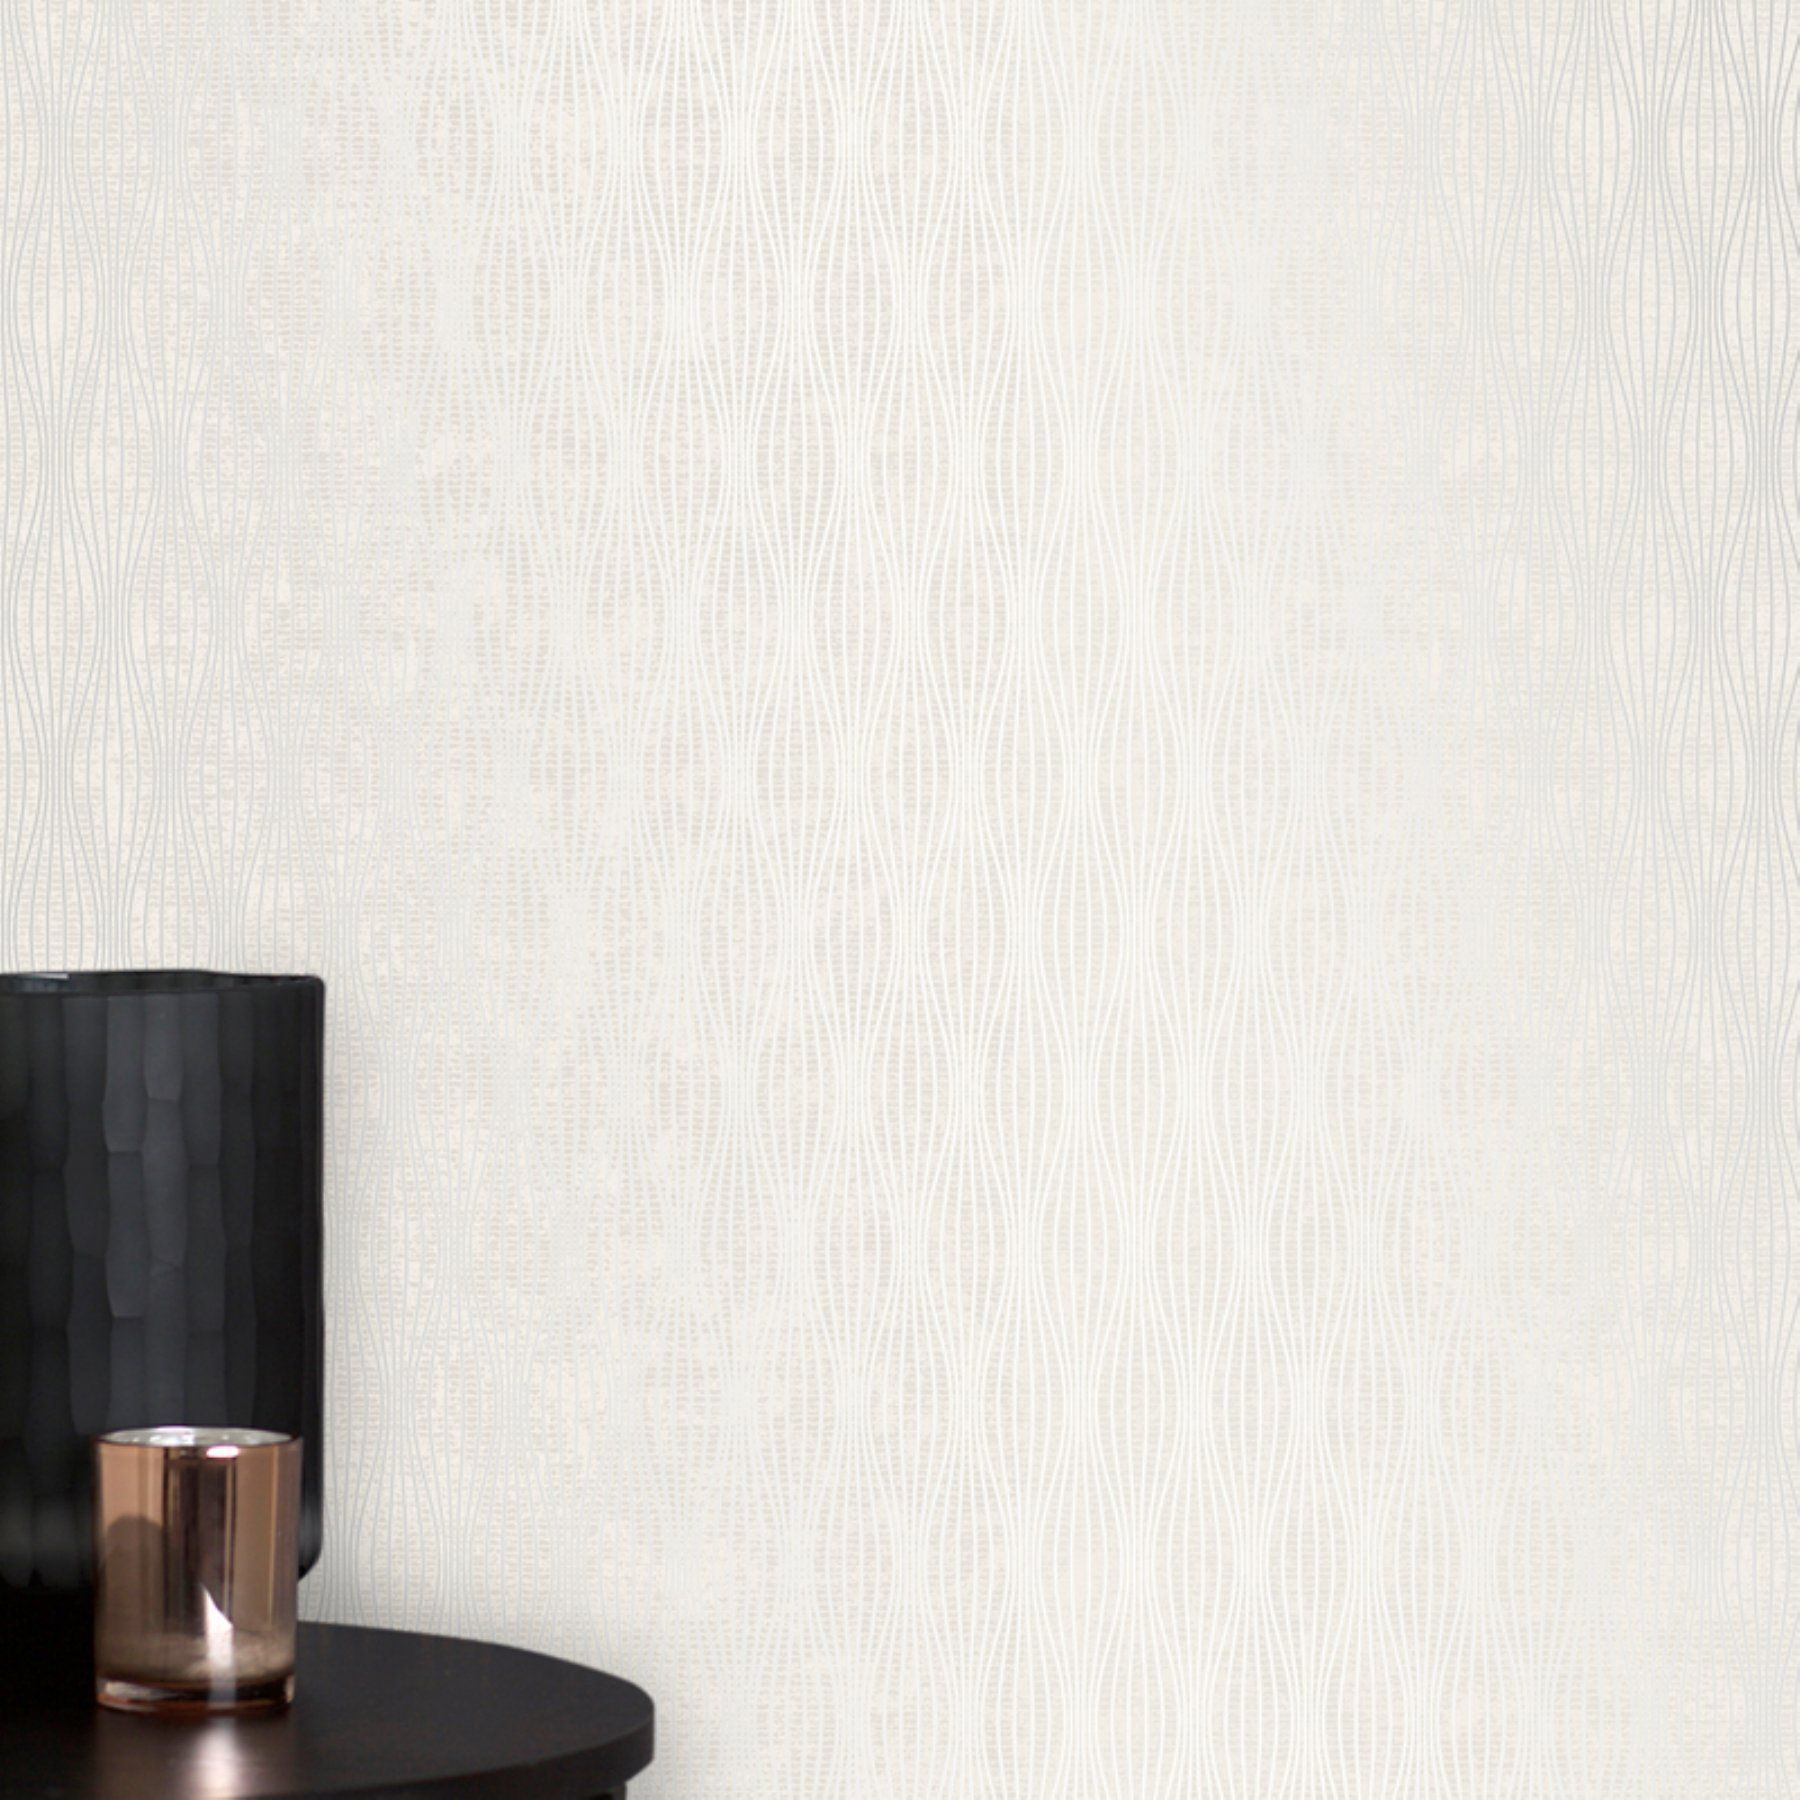 Brewster Kalix Light Gray Wave Wallpaper Products Waves